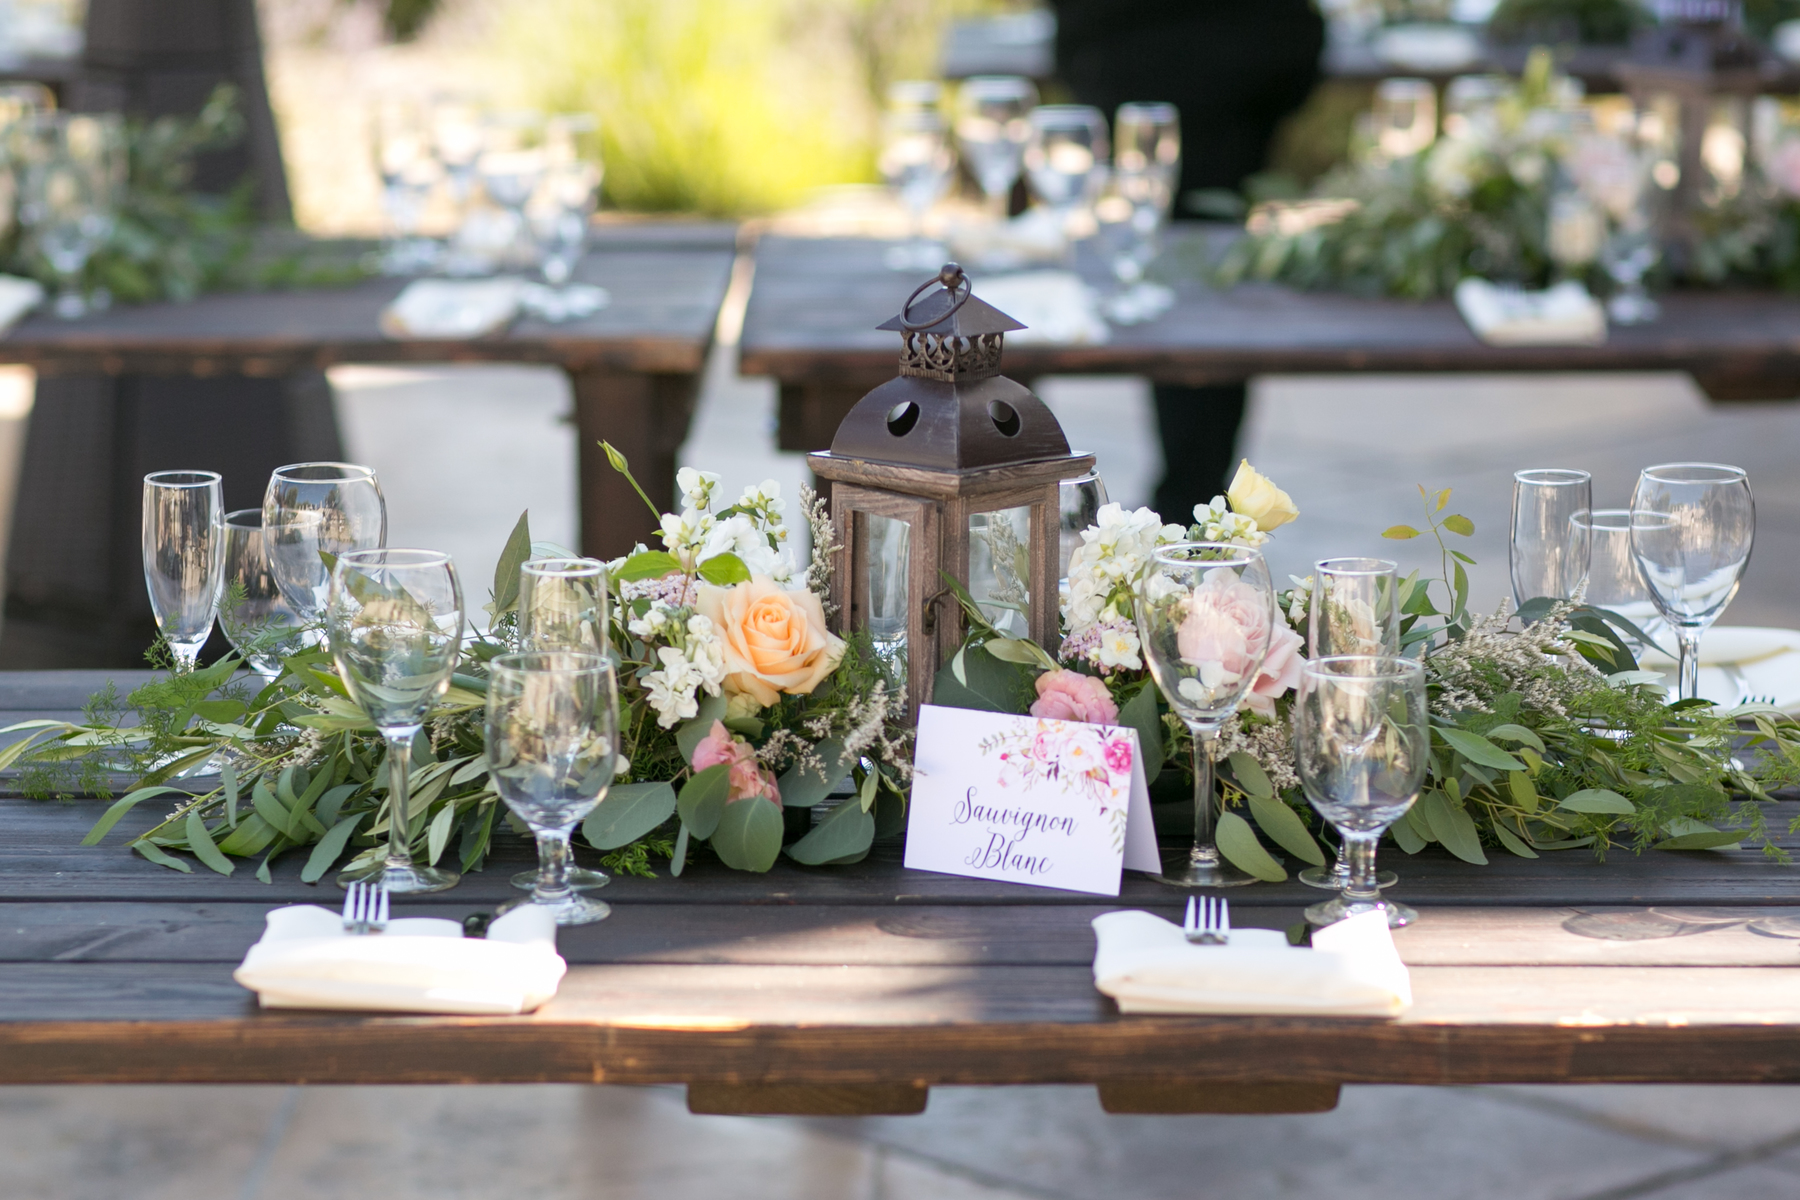 Croad Vineyard Wedding Flowers By Denise Centerpiece Long Table Flowers By Denise